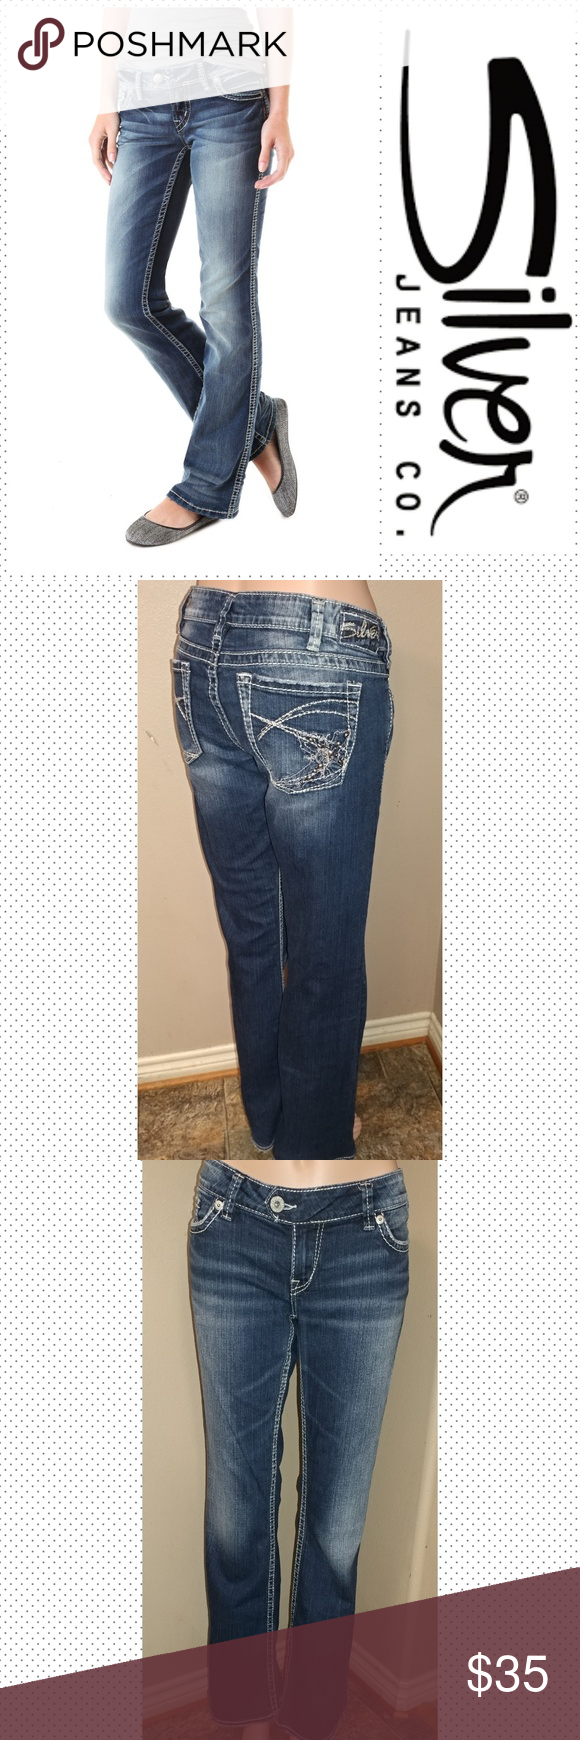 "Silver Tuesday 31x33 Silver Tuesday Boot cut jeans size 31, inseam 33"", rise 7.5, waist laid flat 17"". Distressing on pockets and hem. Great condition. First picture for reference. Silver Jeans Jeans Flare & Wide Leg"